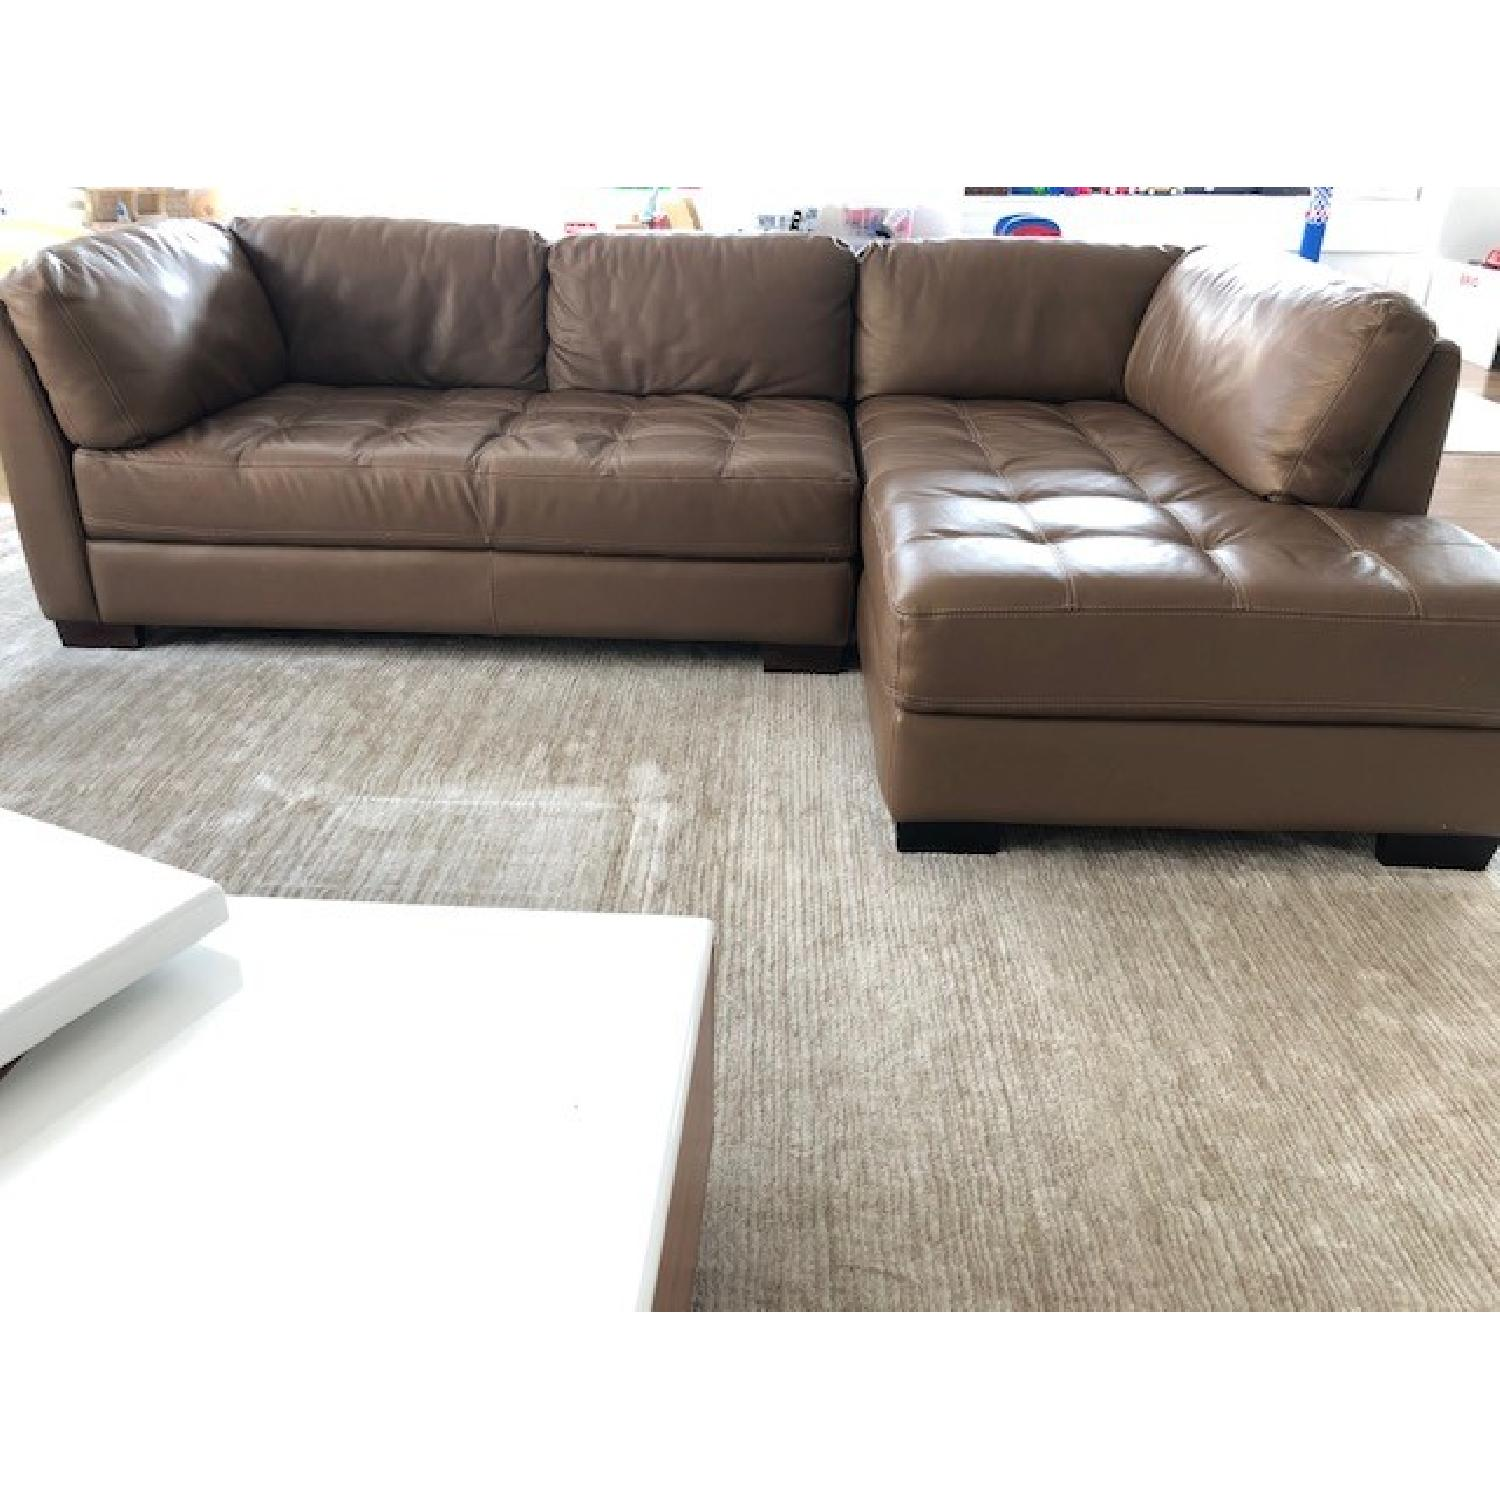 Bloomingdale\'s Brown Leather 2-Piece Sectional Sofa - AptDeco